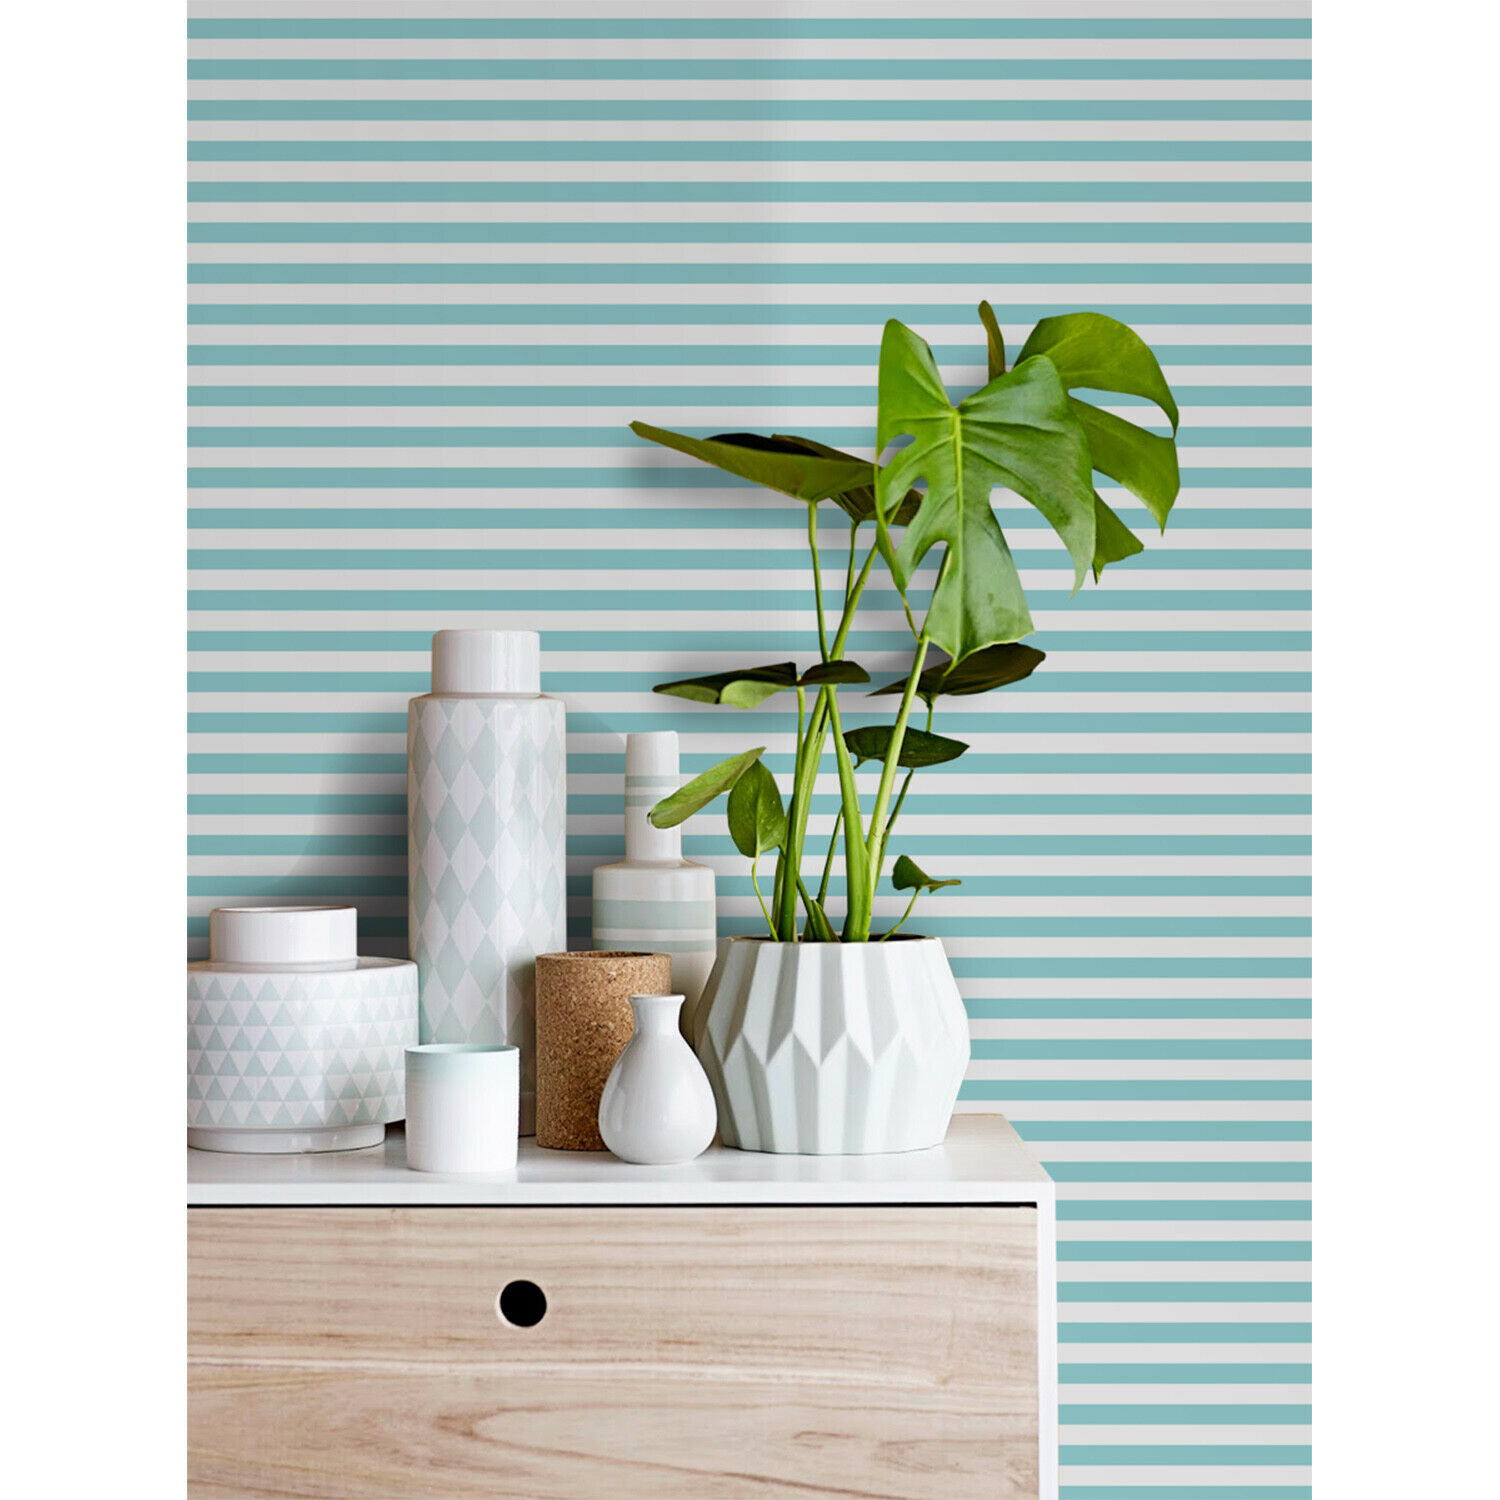 Minimalistic lines pattern simple geometric stripped modern Non-Woven wallpaper